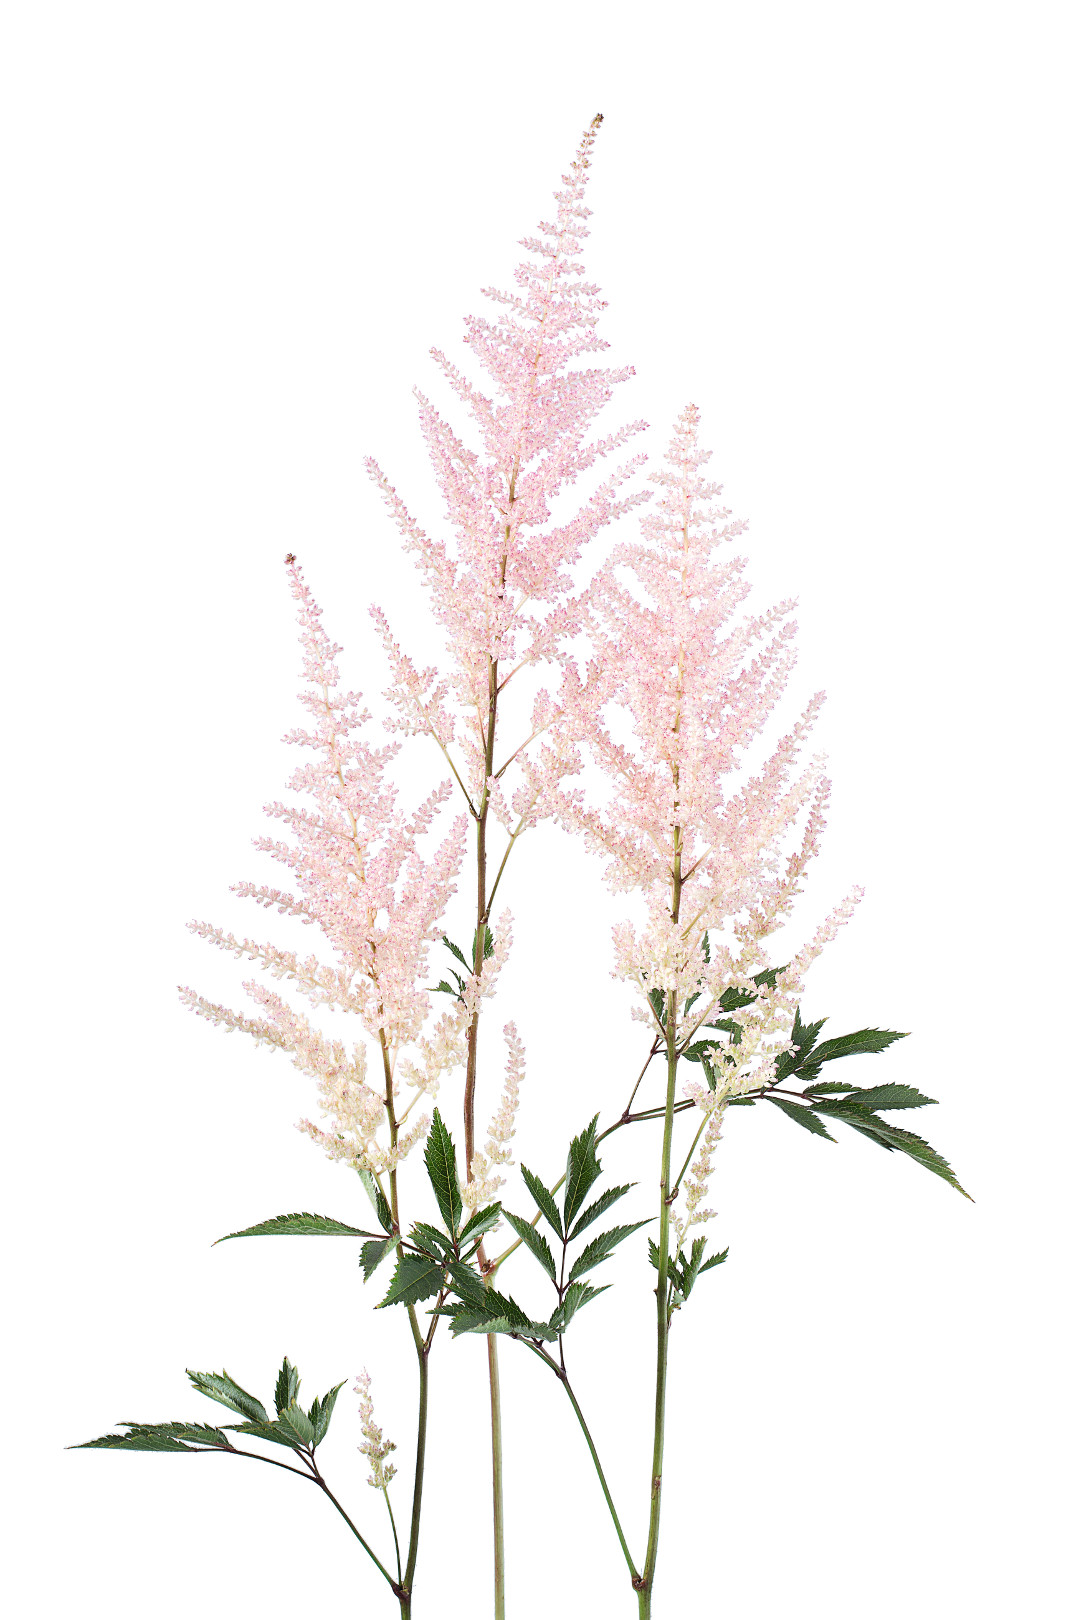 Astilbe from The Flower Colour Guide